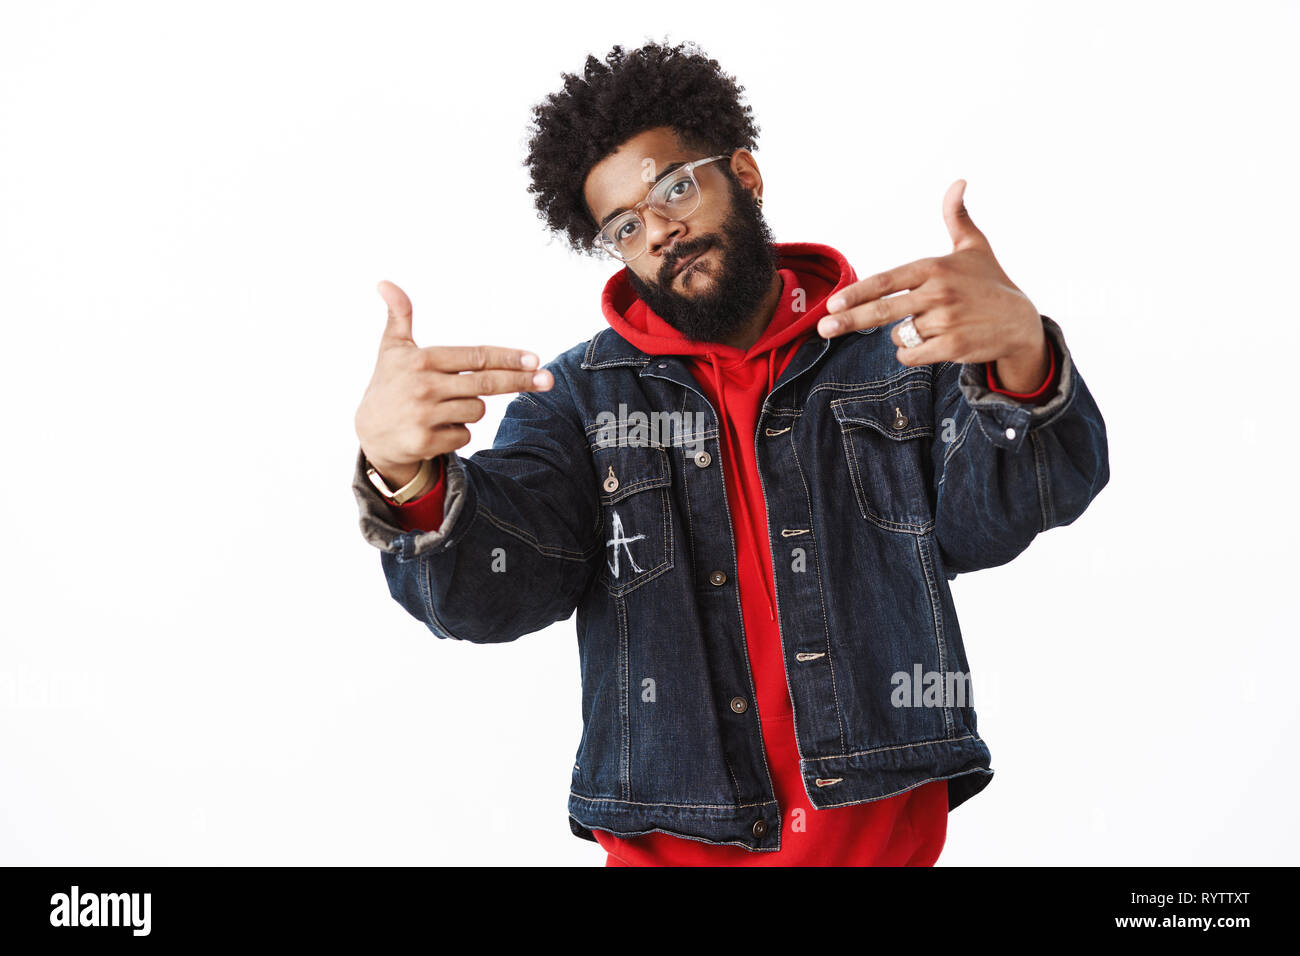 Cool and stlyish handsome african-american young male rapper with beard and piercing showing finger gun gestures pointing at himself, licking lip and - Stock Image